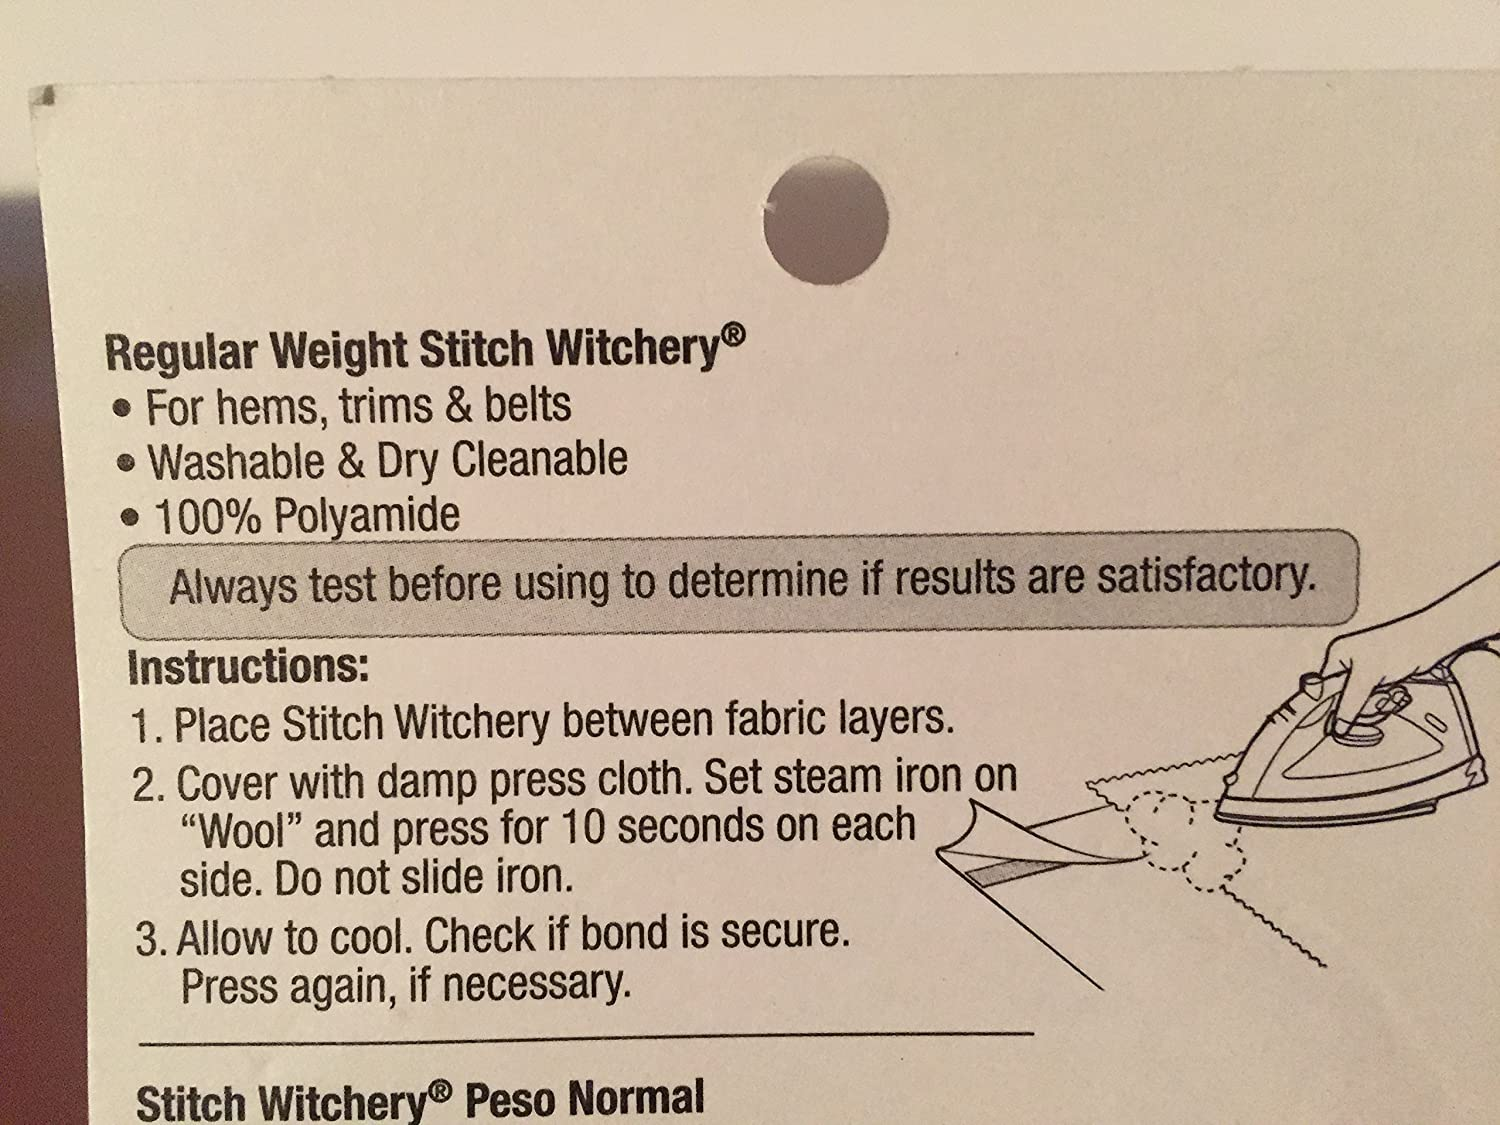 qty 2 CESDes Bundle Stitch Witchery Ultra and Regular fusible bonding tapes 5//8 x 20yds